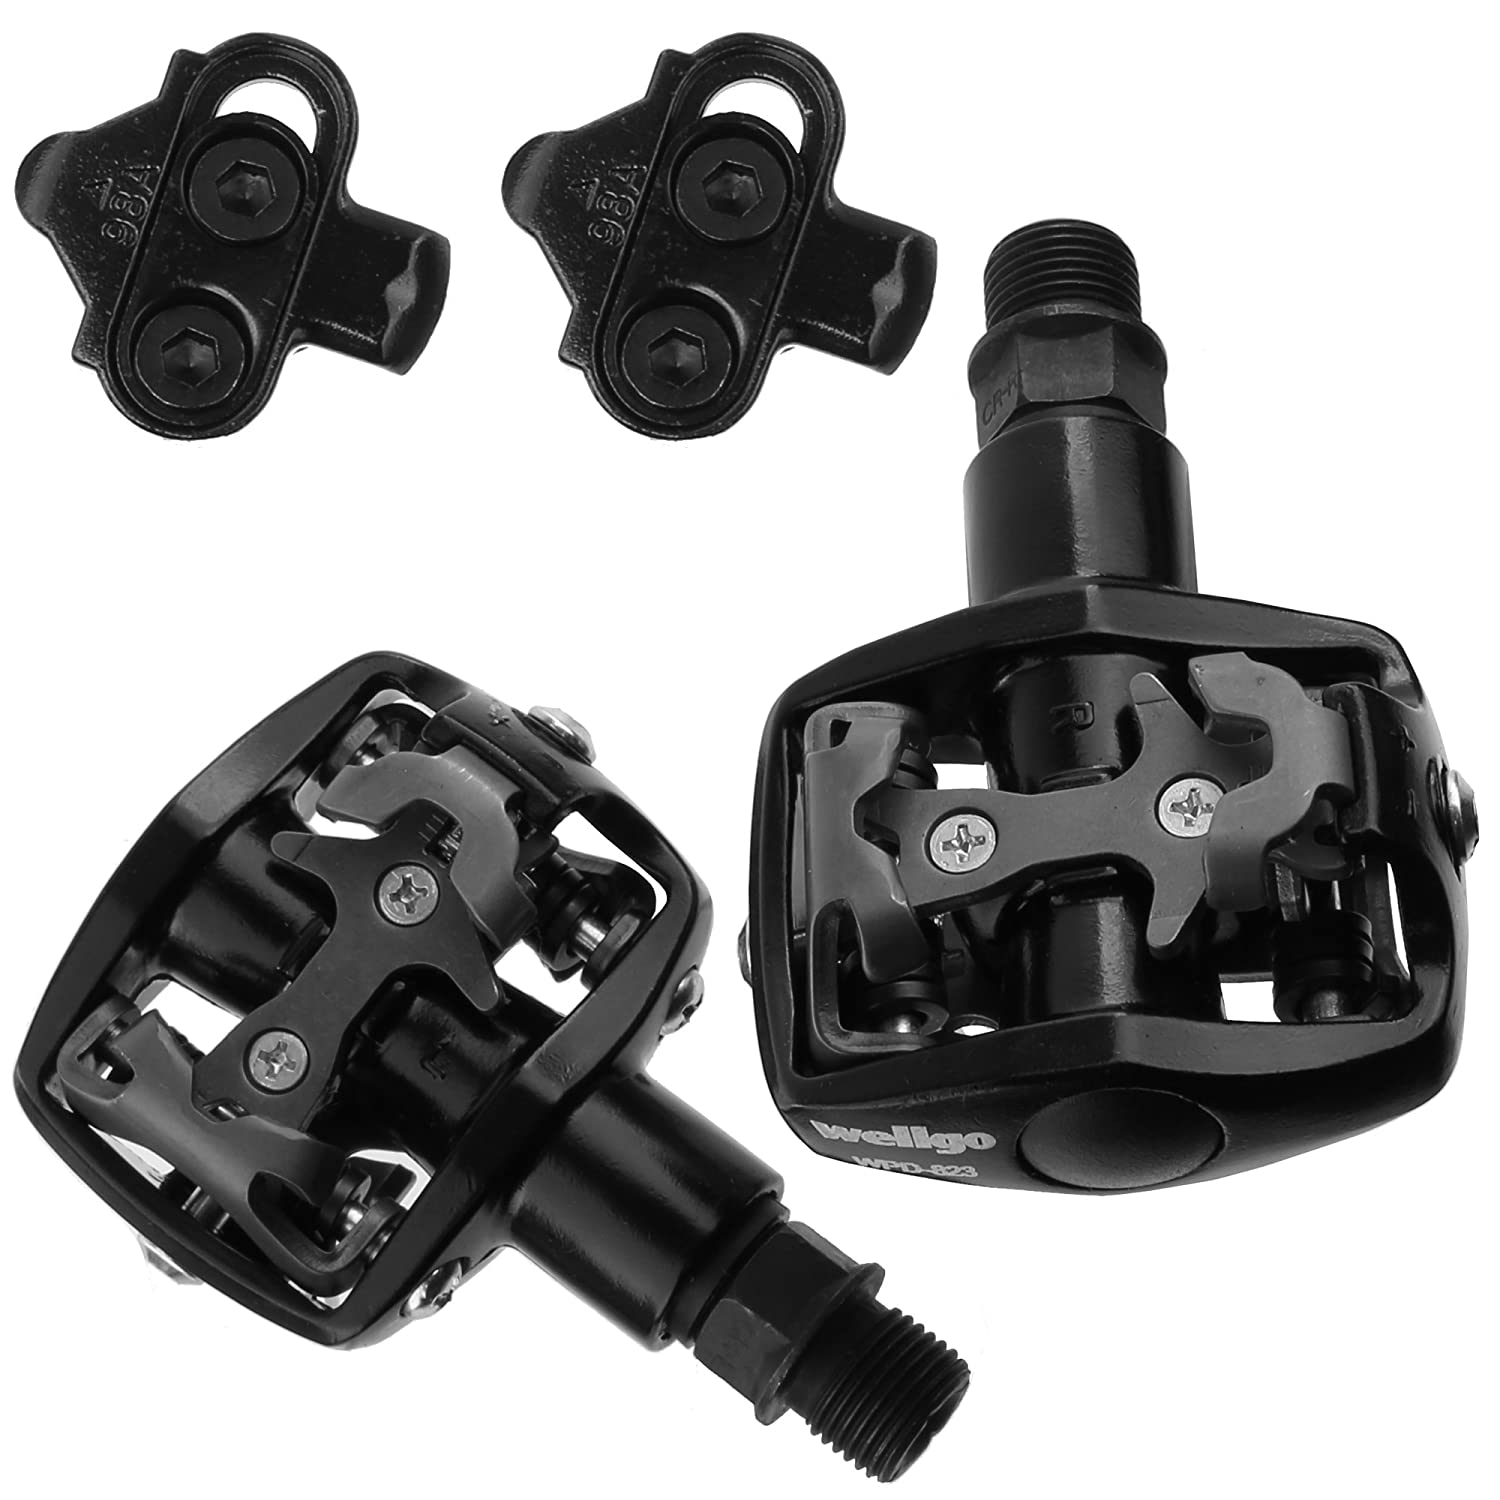 Venzo Mountain Bike Bicycle Cycling Shimano SPD Shoes Pedals /& Cleats